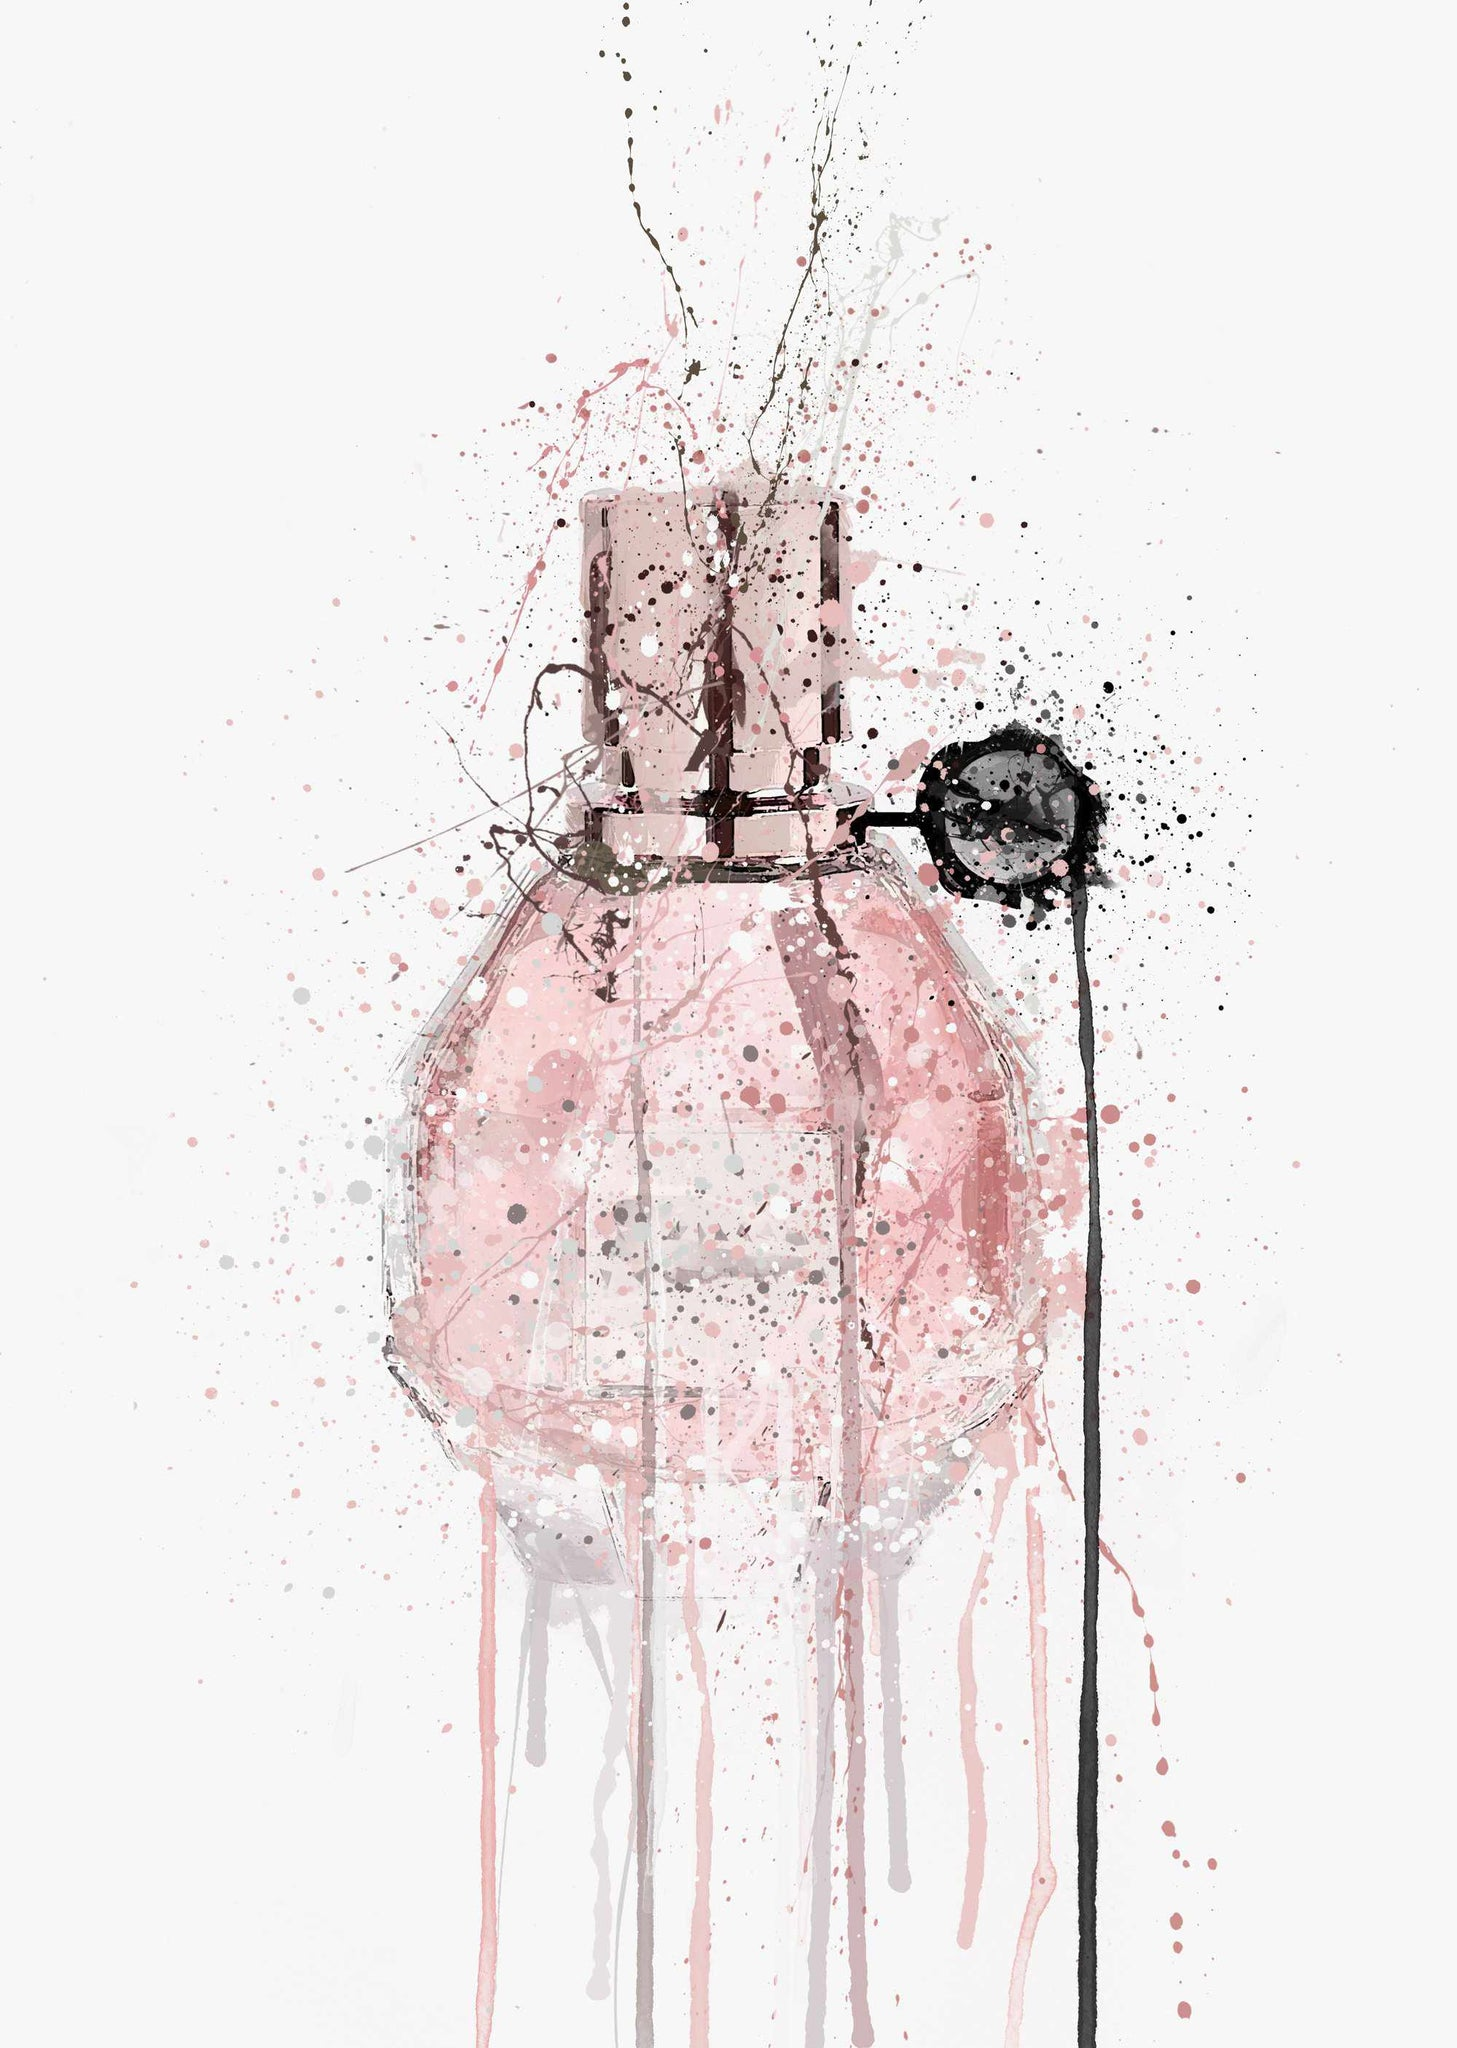 Fragrance Bottle Wall Art Print 'Candy'-We Love Prints